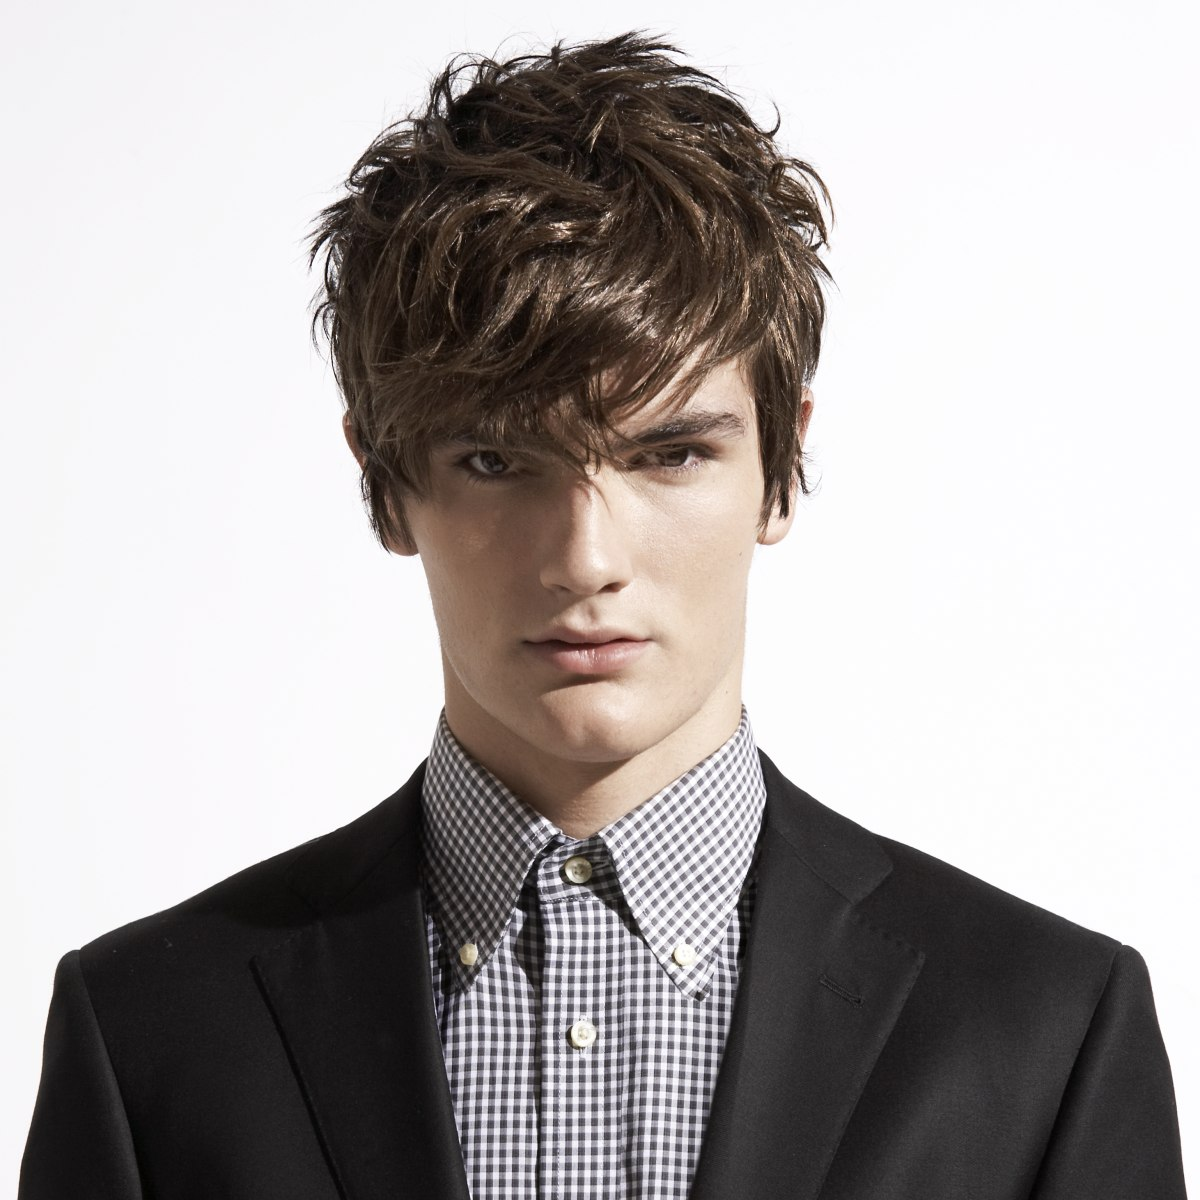 Wearable And Touchable Textured Hairstyle For Men